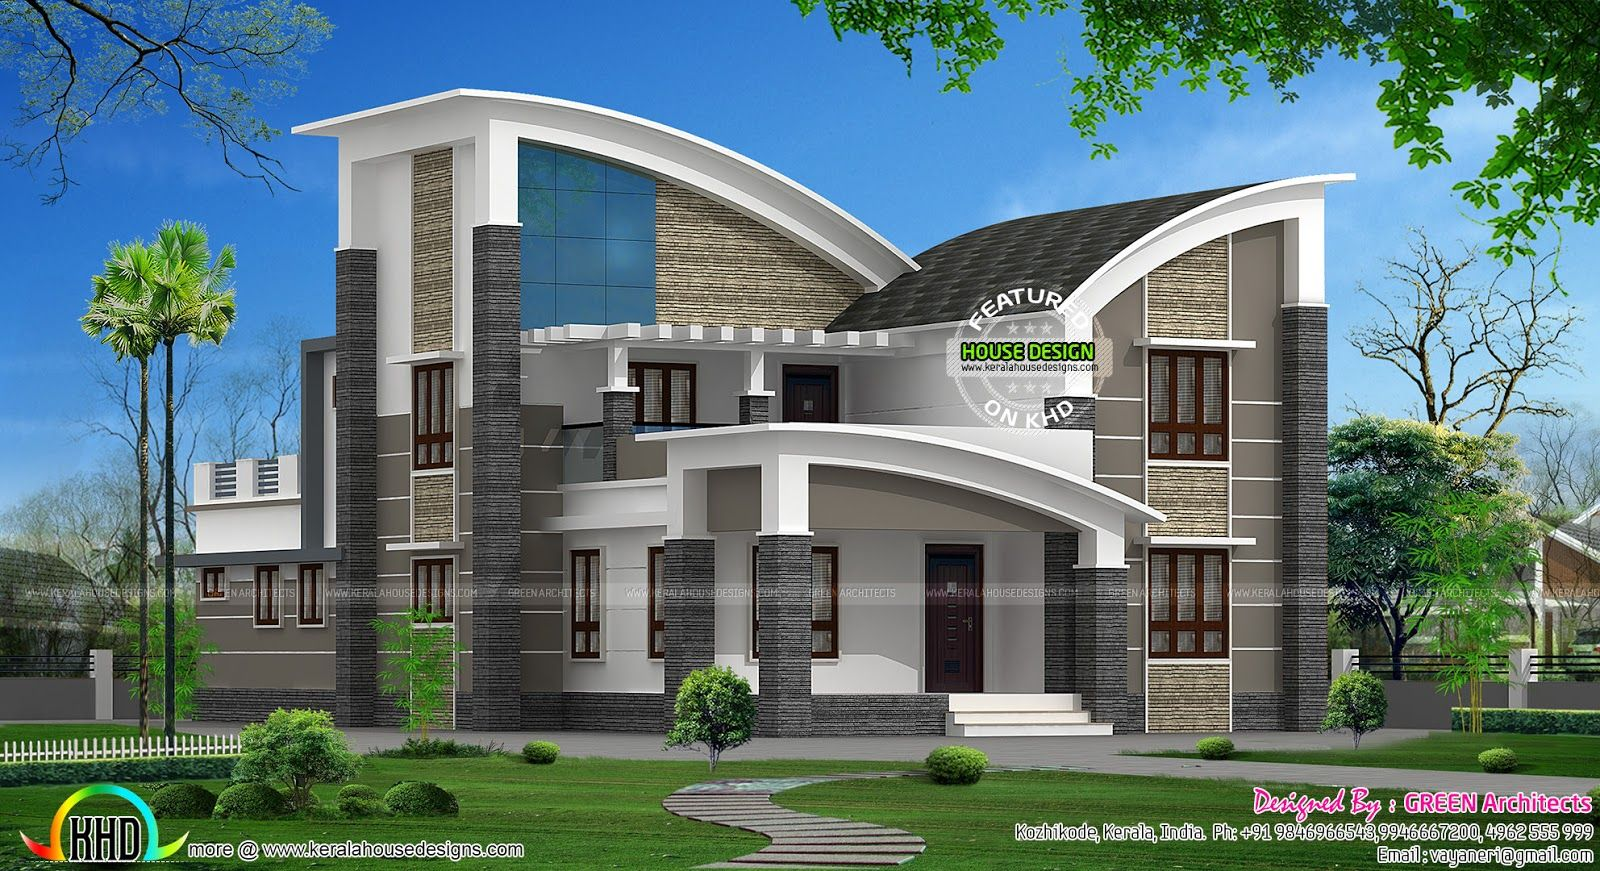 Modern style curved roof villa home inspiration for Arch design indian home plans